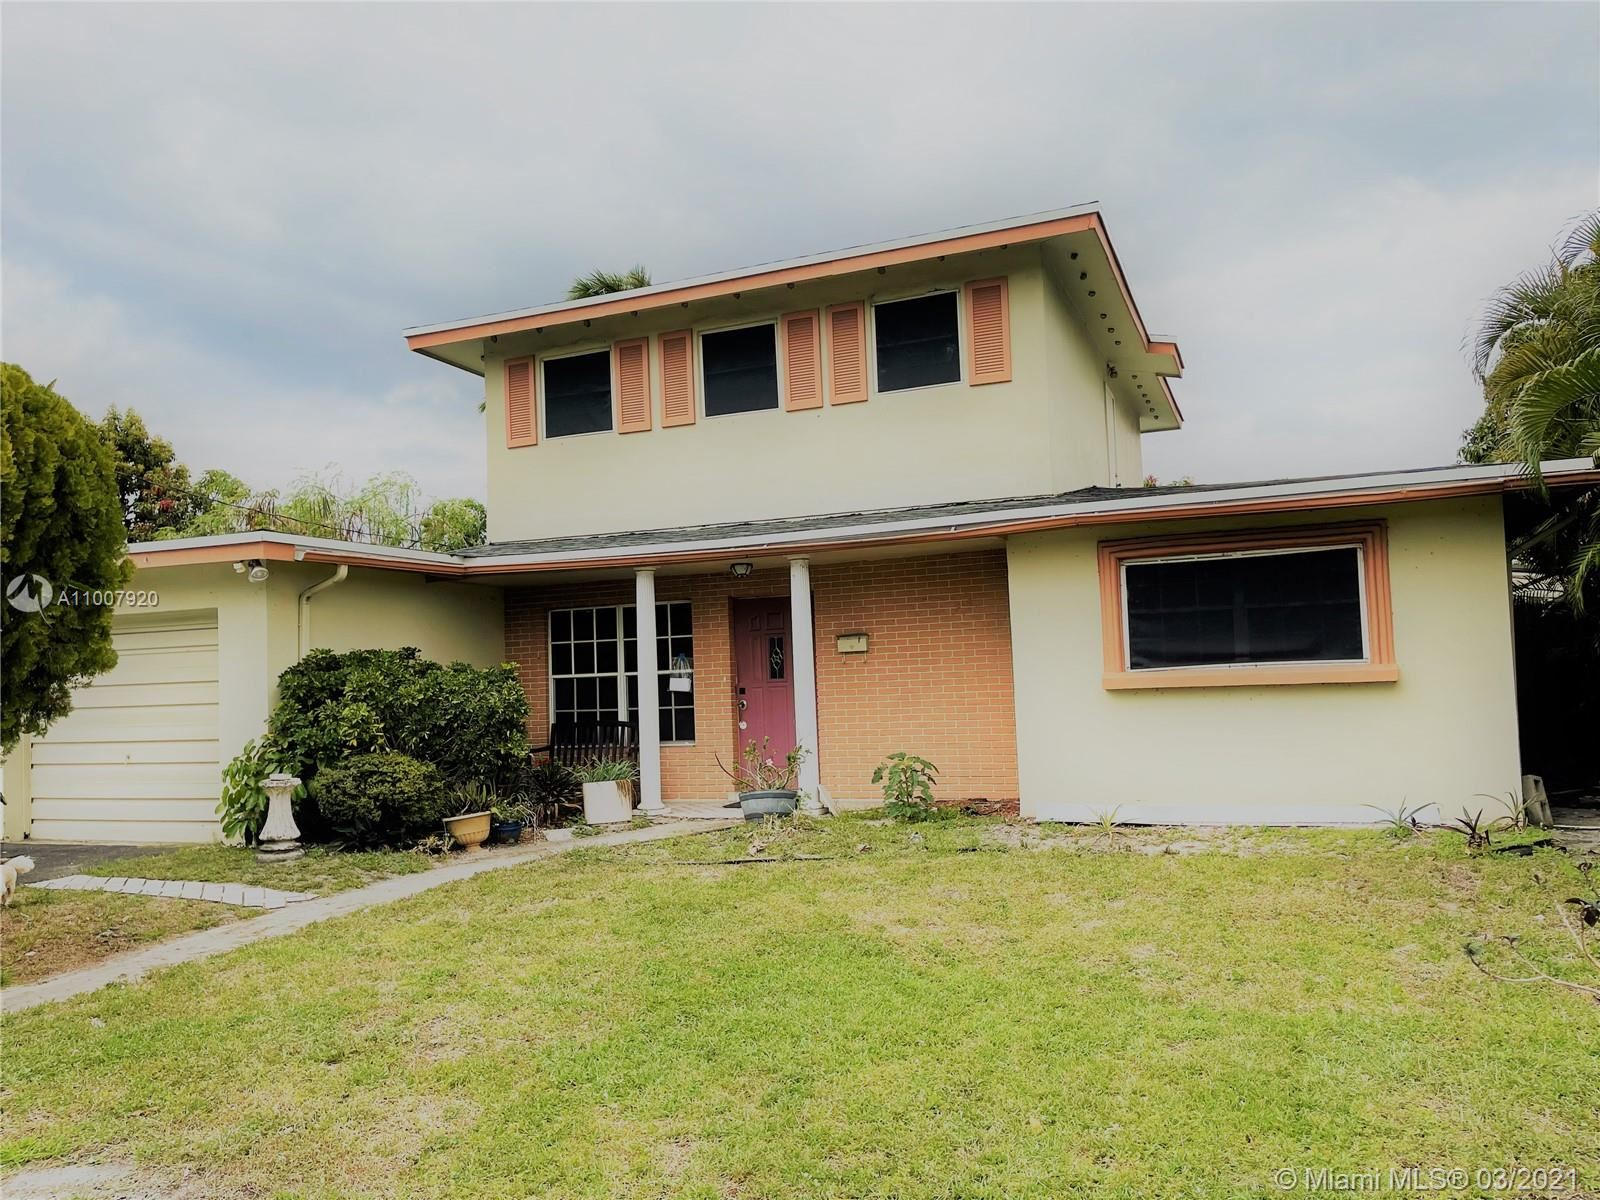 3520 NW 33rd Ave, Lauderdale Lakes, FL 33309 - #: A11007920